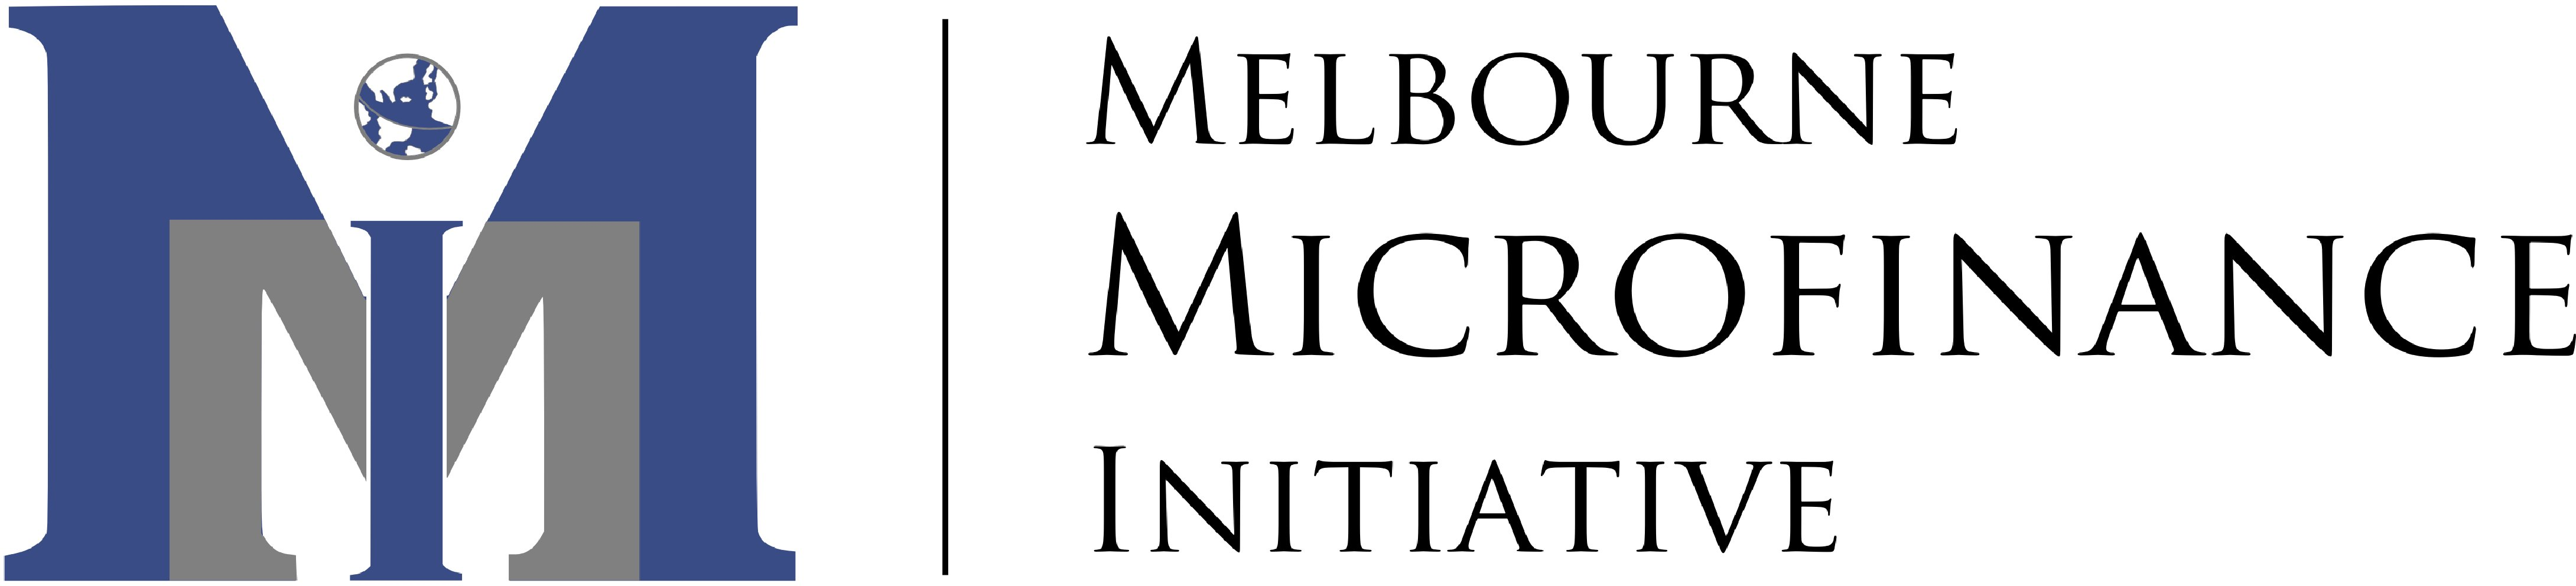 Melbourne Microfinance Initiative